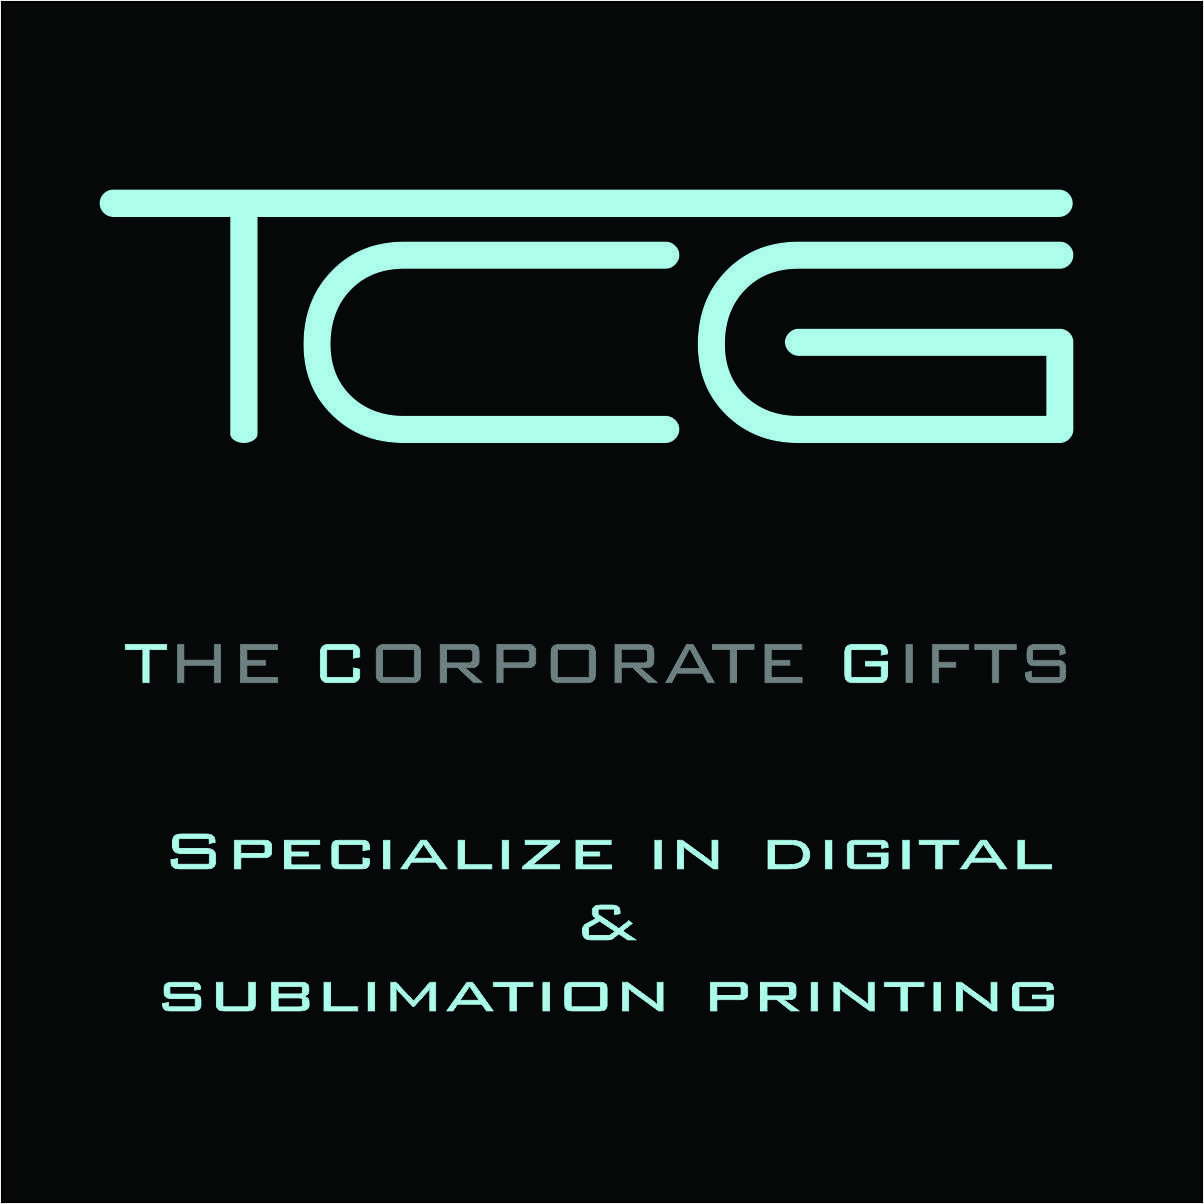 The Corporate Gift